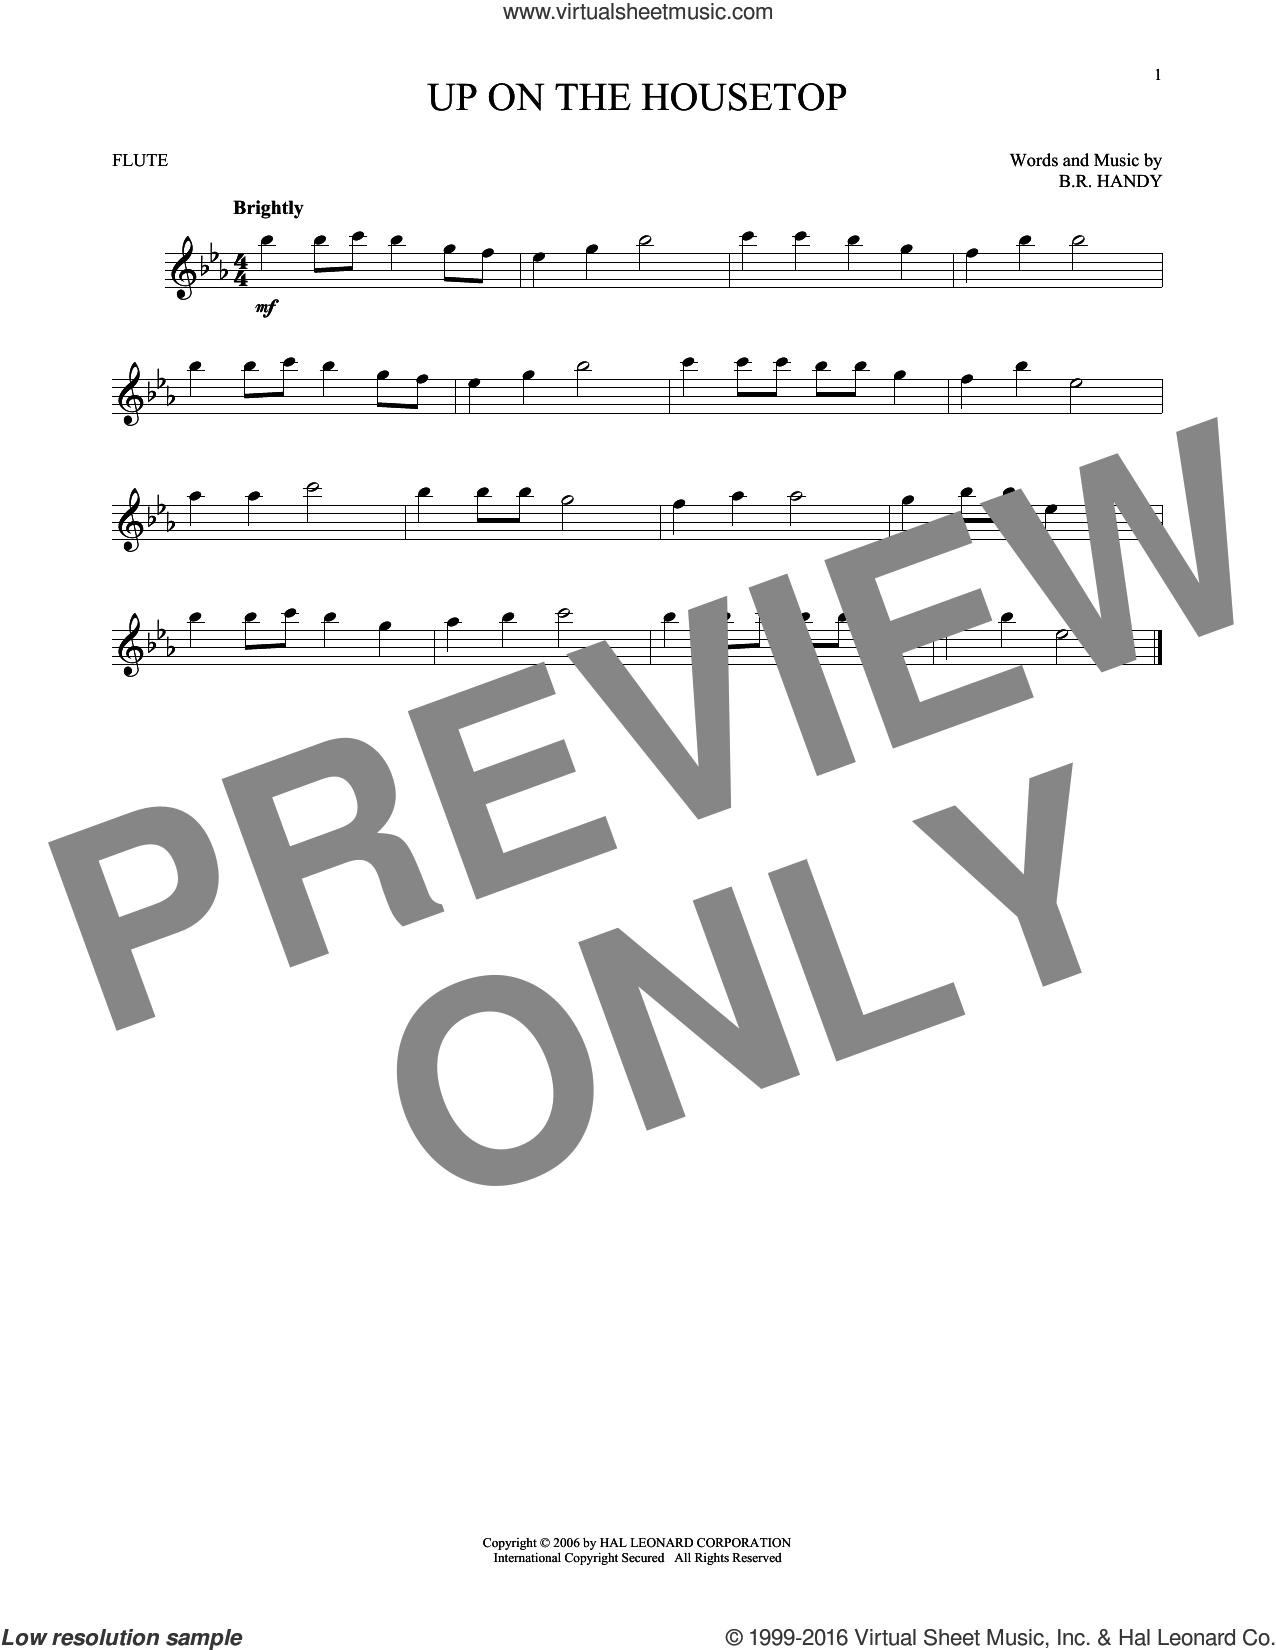 Up On The Housetop sheet music for flute solo by Benjamin Hanby, intermediate skill level